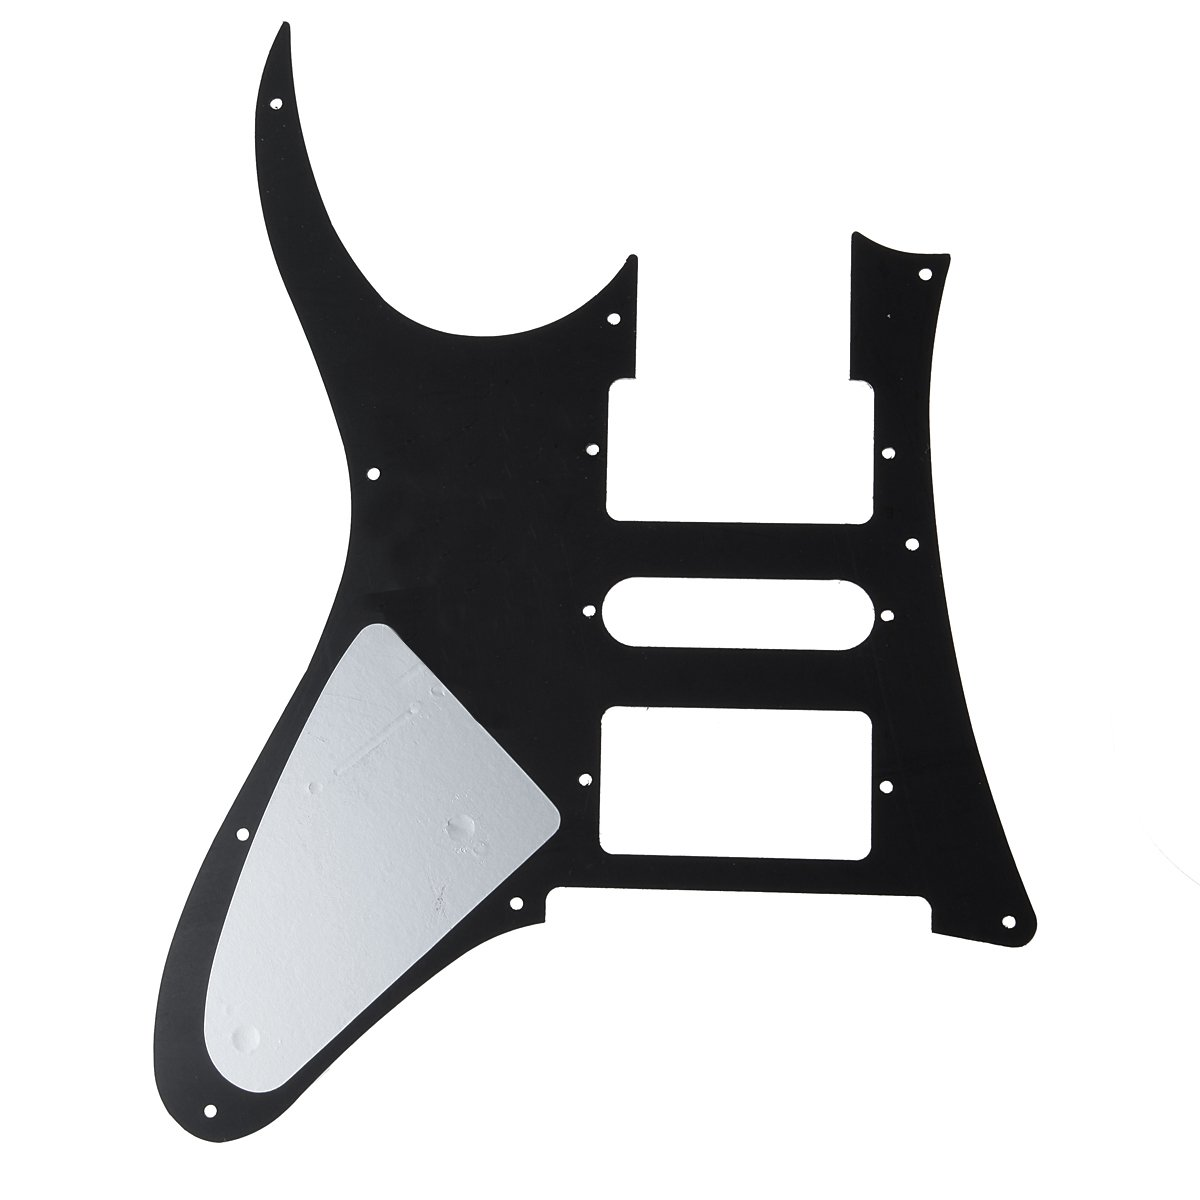 Amazon.com: Kmise MI0221 Black Electric Guitar Pickguard for Ibanez ...